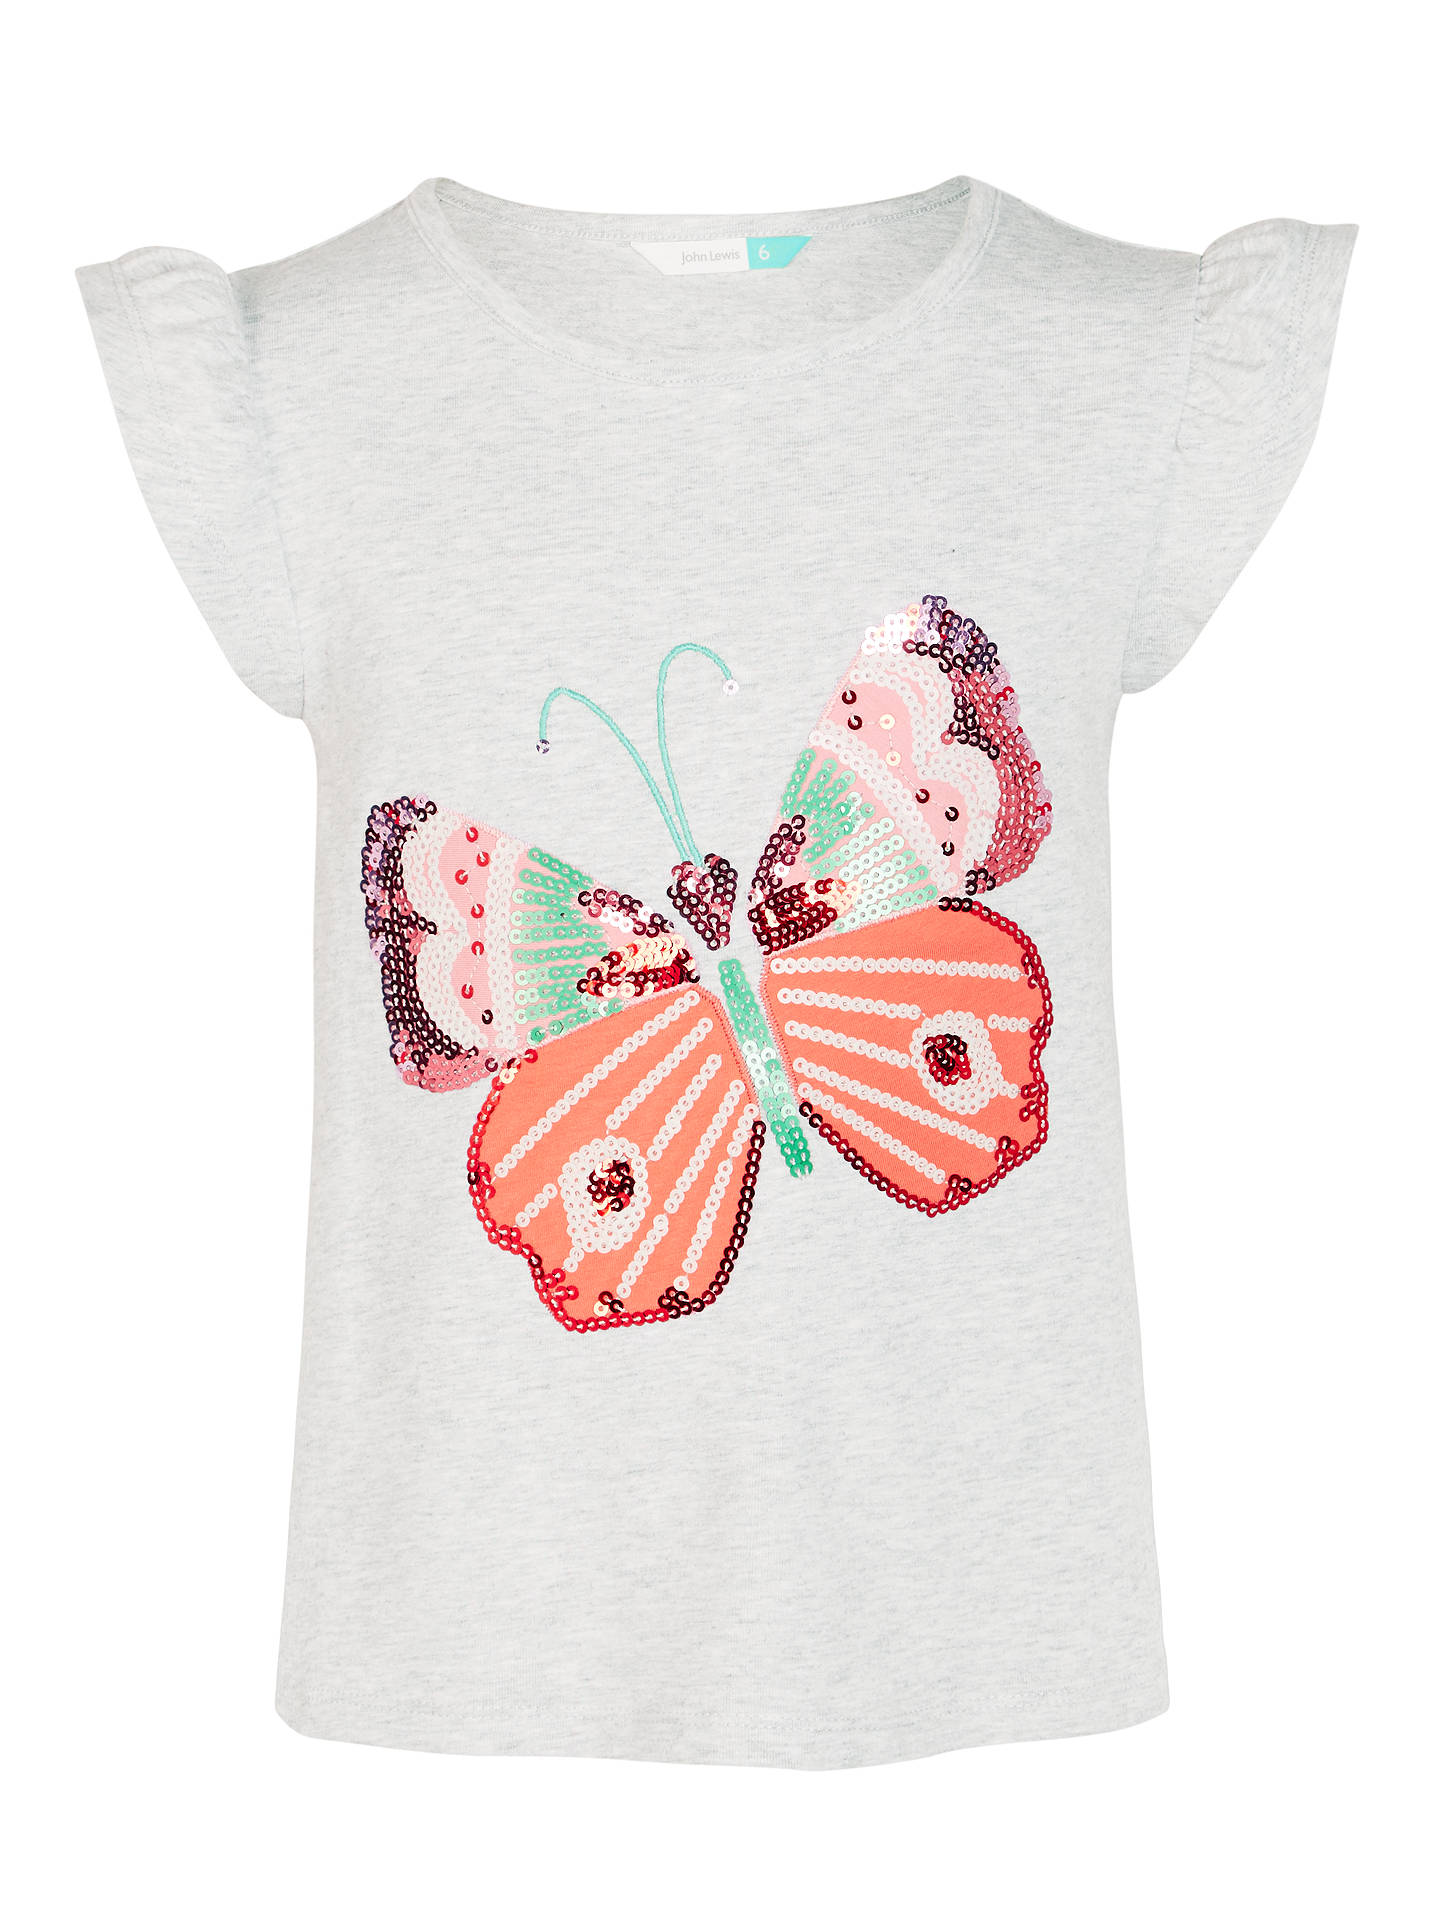 0a936d3b BuyJohn Lewis Girls' Sequin Butterfly T-Shirt, Grey, 2 years Online at ...